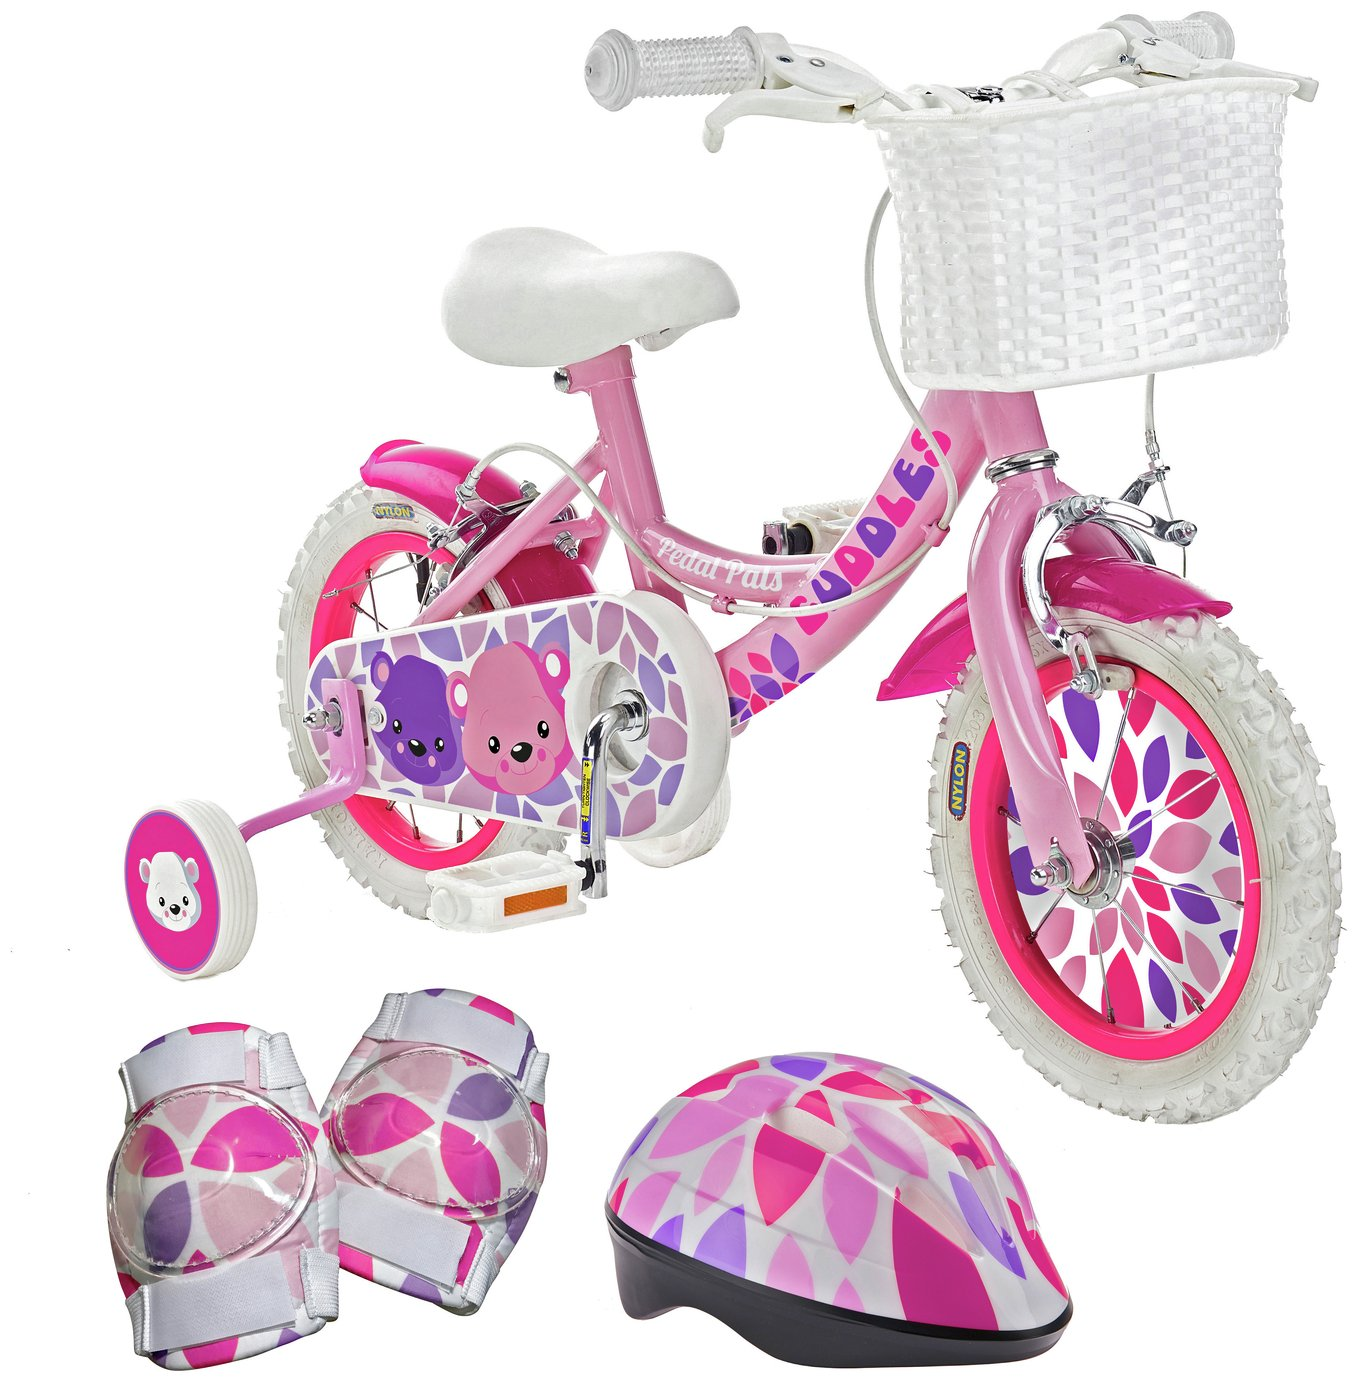 aceba9c85e8 Pedal Pals 12 Inch Cuddles Kids Bike and Accessories Set from Pedal Pals